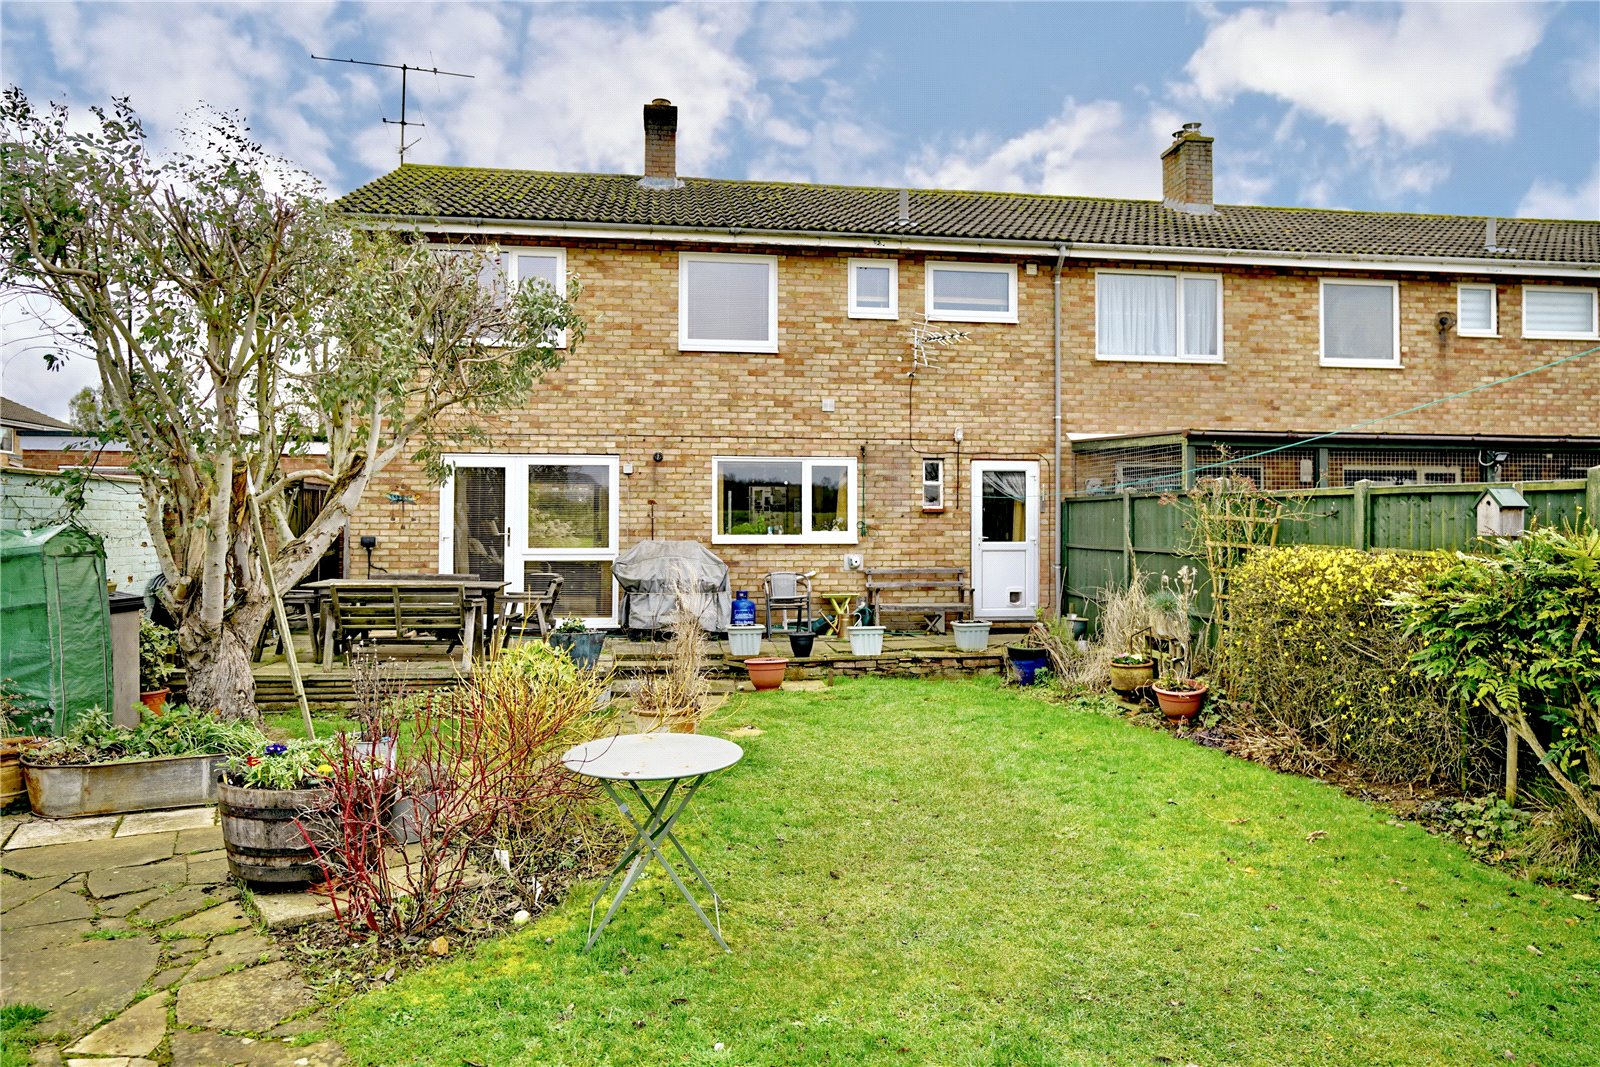 3 bed house for sale in Green Acres, Gamlingay  - Property Image 14